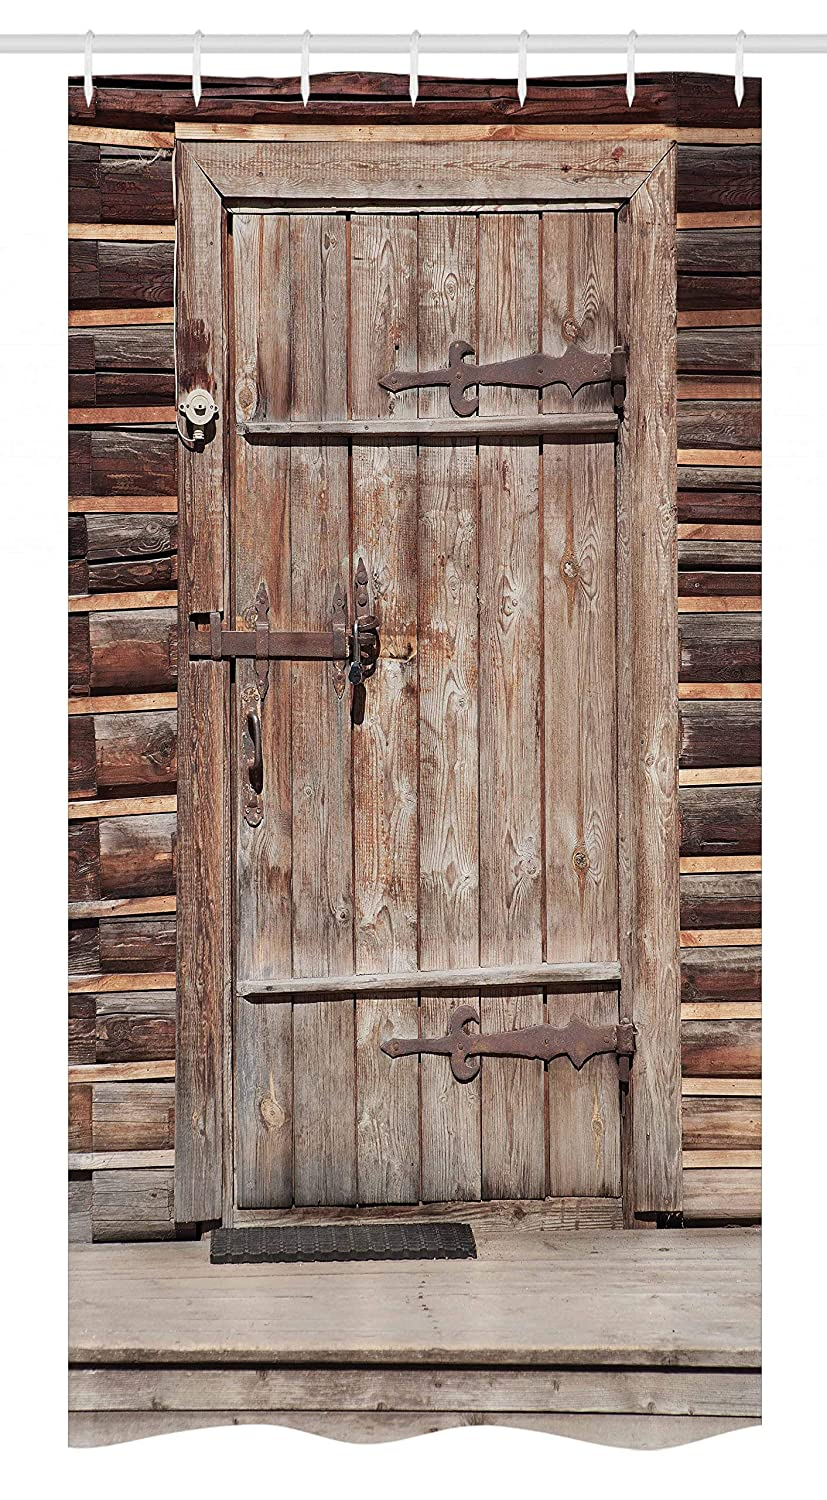 Ambesonne Rustic Stall Shower Curtain, Timber Rustic Door in Wall of an Old Log House Ancient Abandoned Building Entrance Gate, Fabric Bathroom Decor Set with Hooks, 36 W x 72 L Inches, Brown